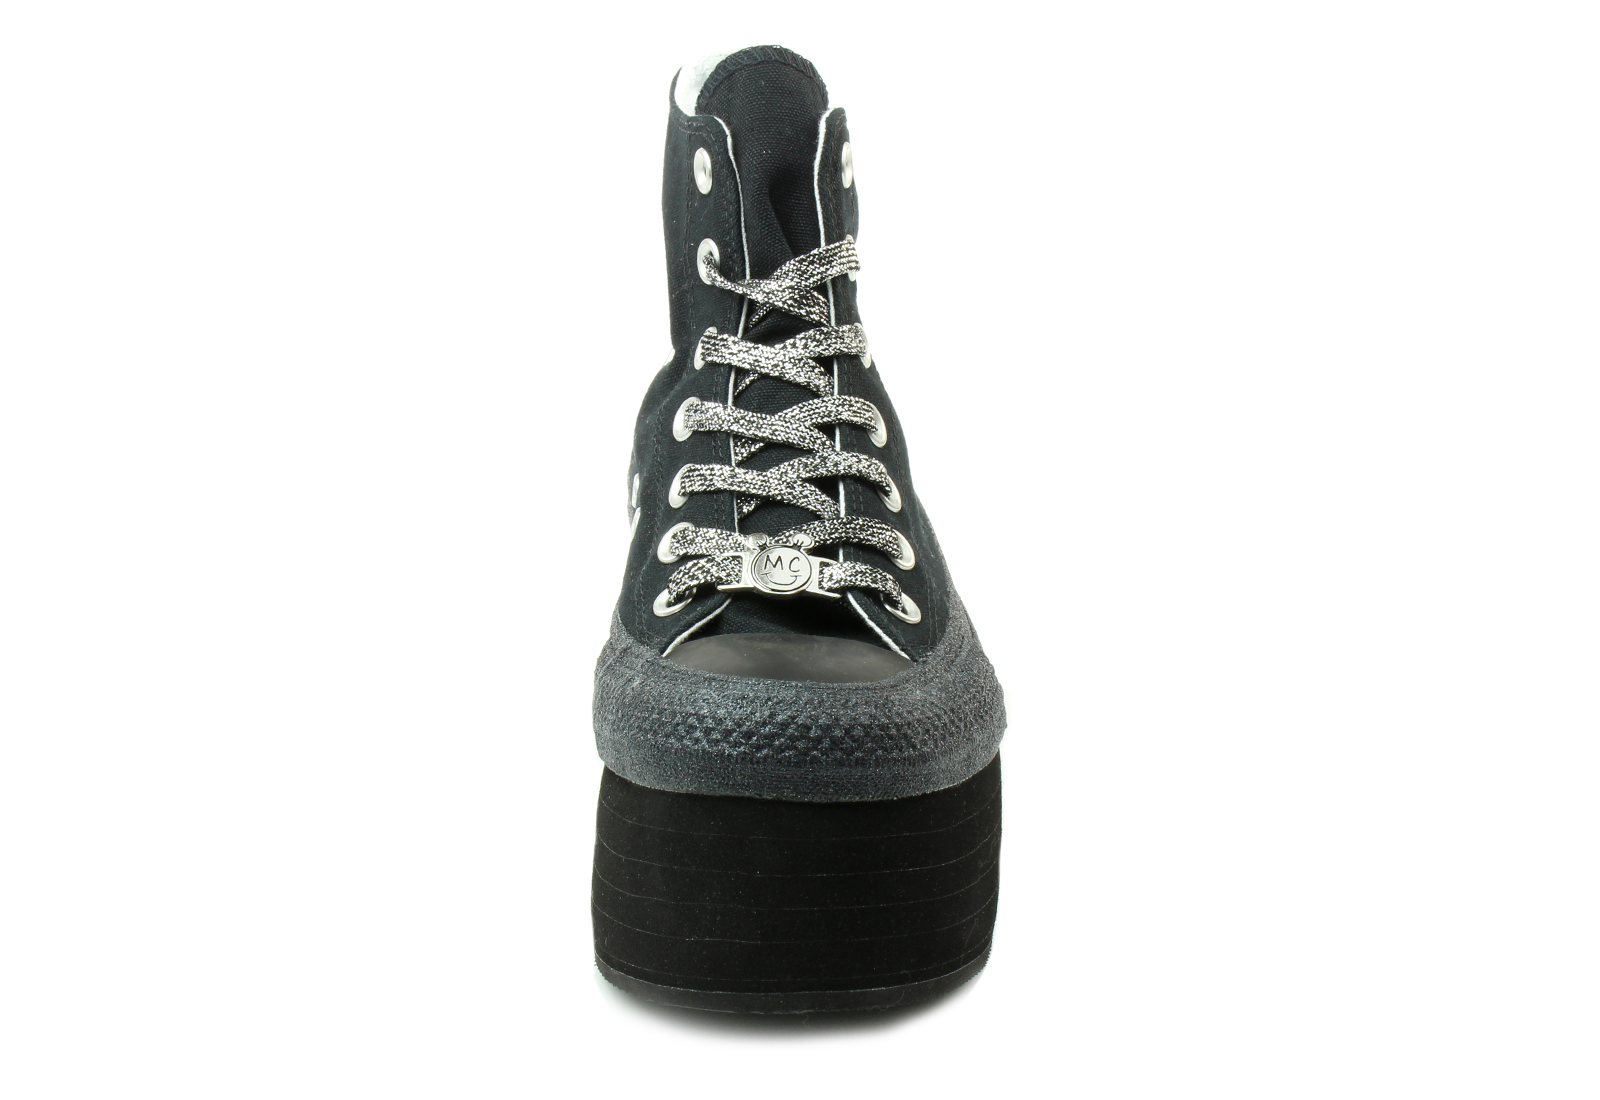 Converse Sneakers Chuck Taylor Miley Cyrus Classic Ox